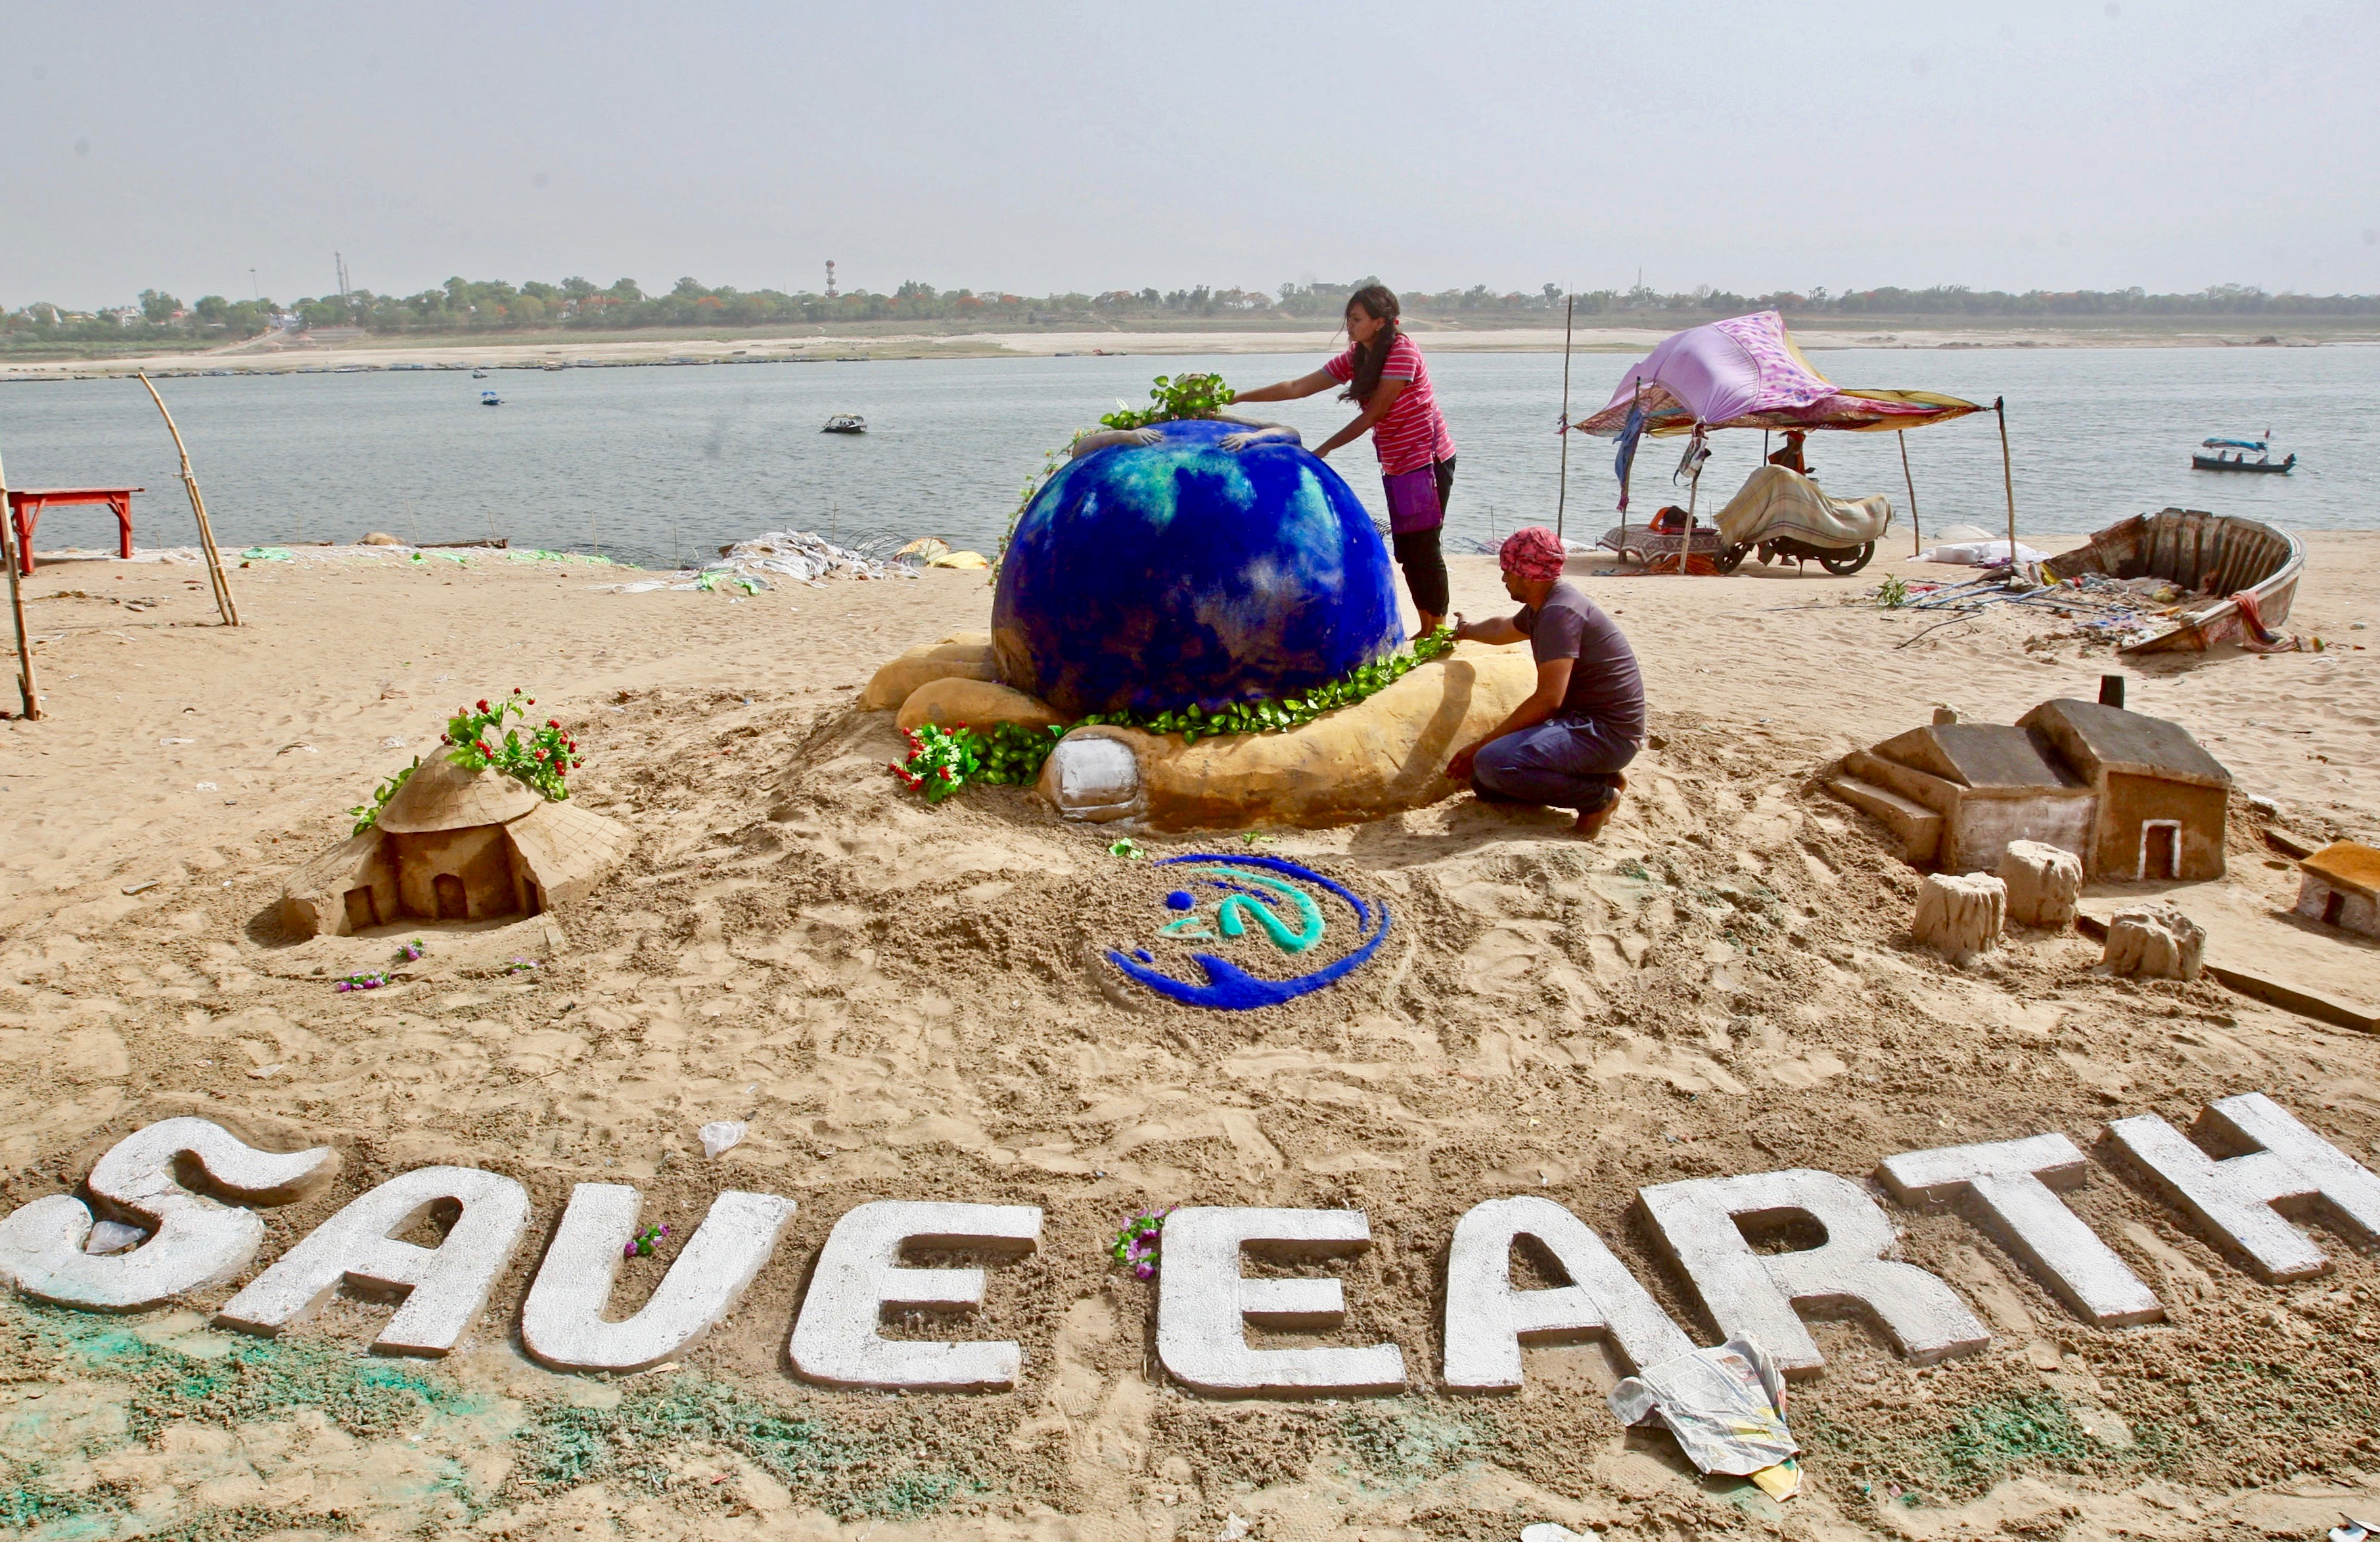 Earth Day 2018 sand sculpture on the banks of the river Yamuna in Allahabad, India.